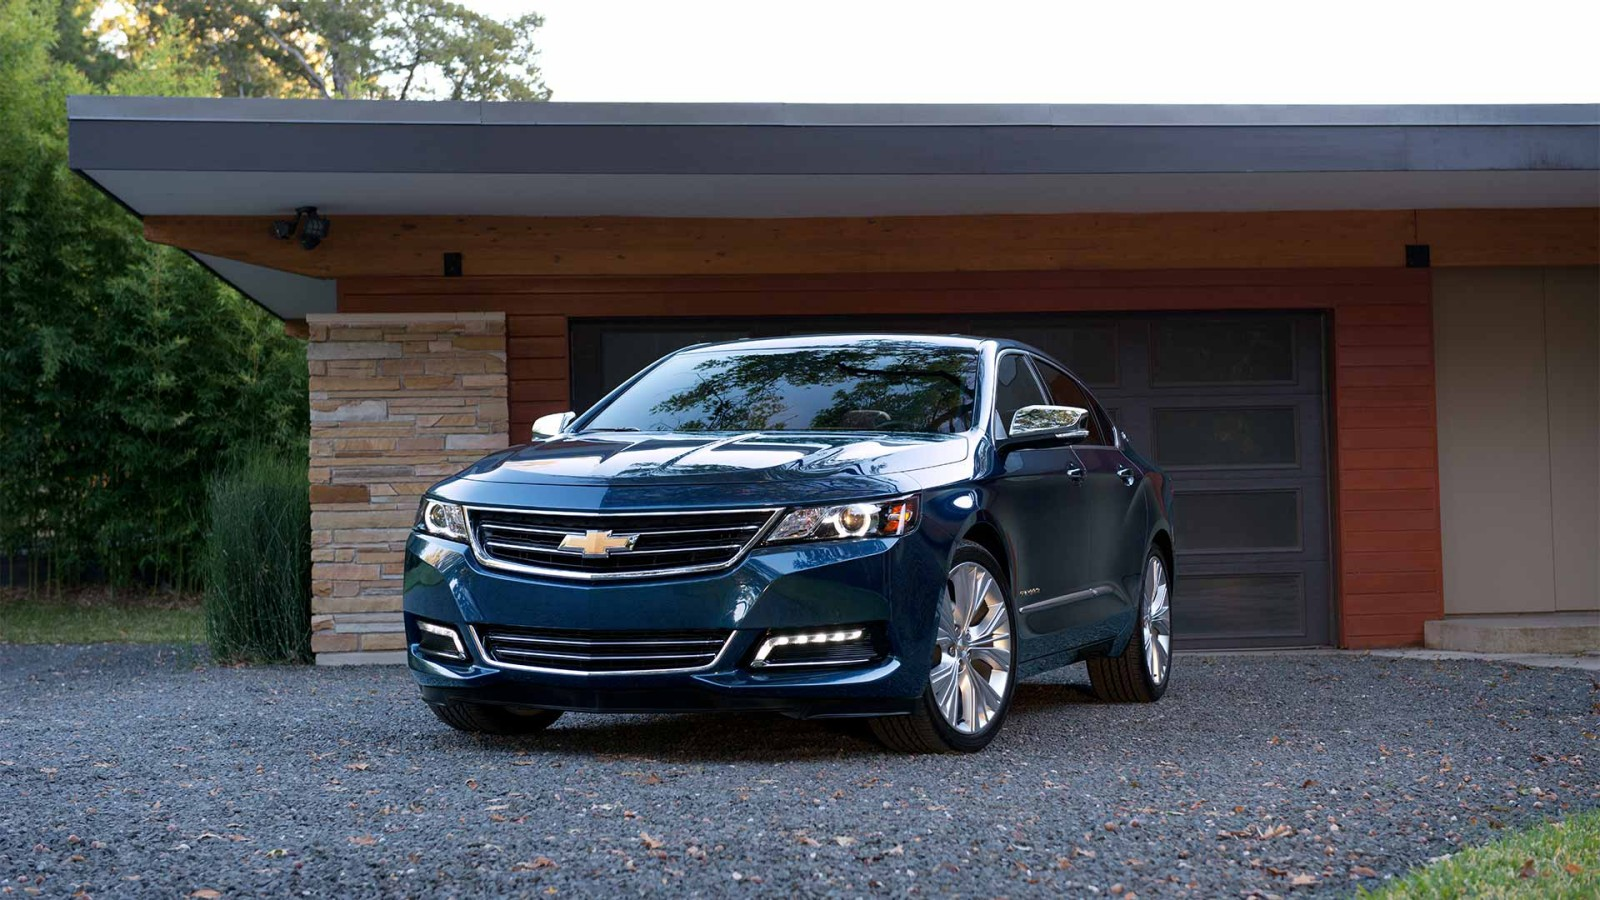 2018 Chevrolet Impala Leasing in Chantilly, VA